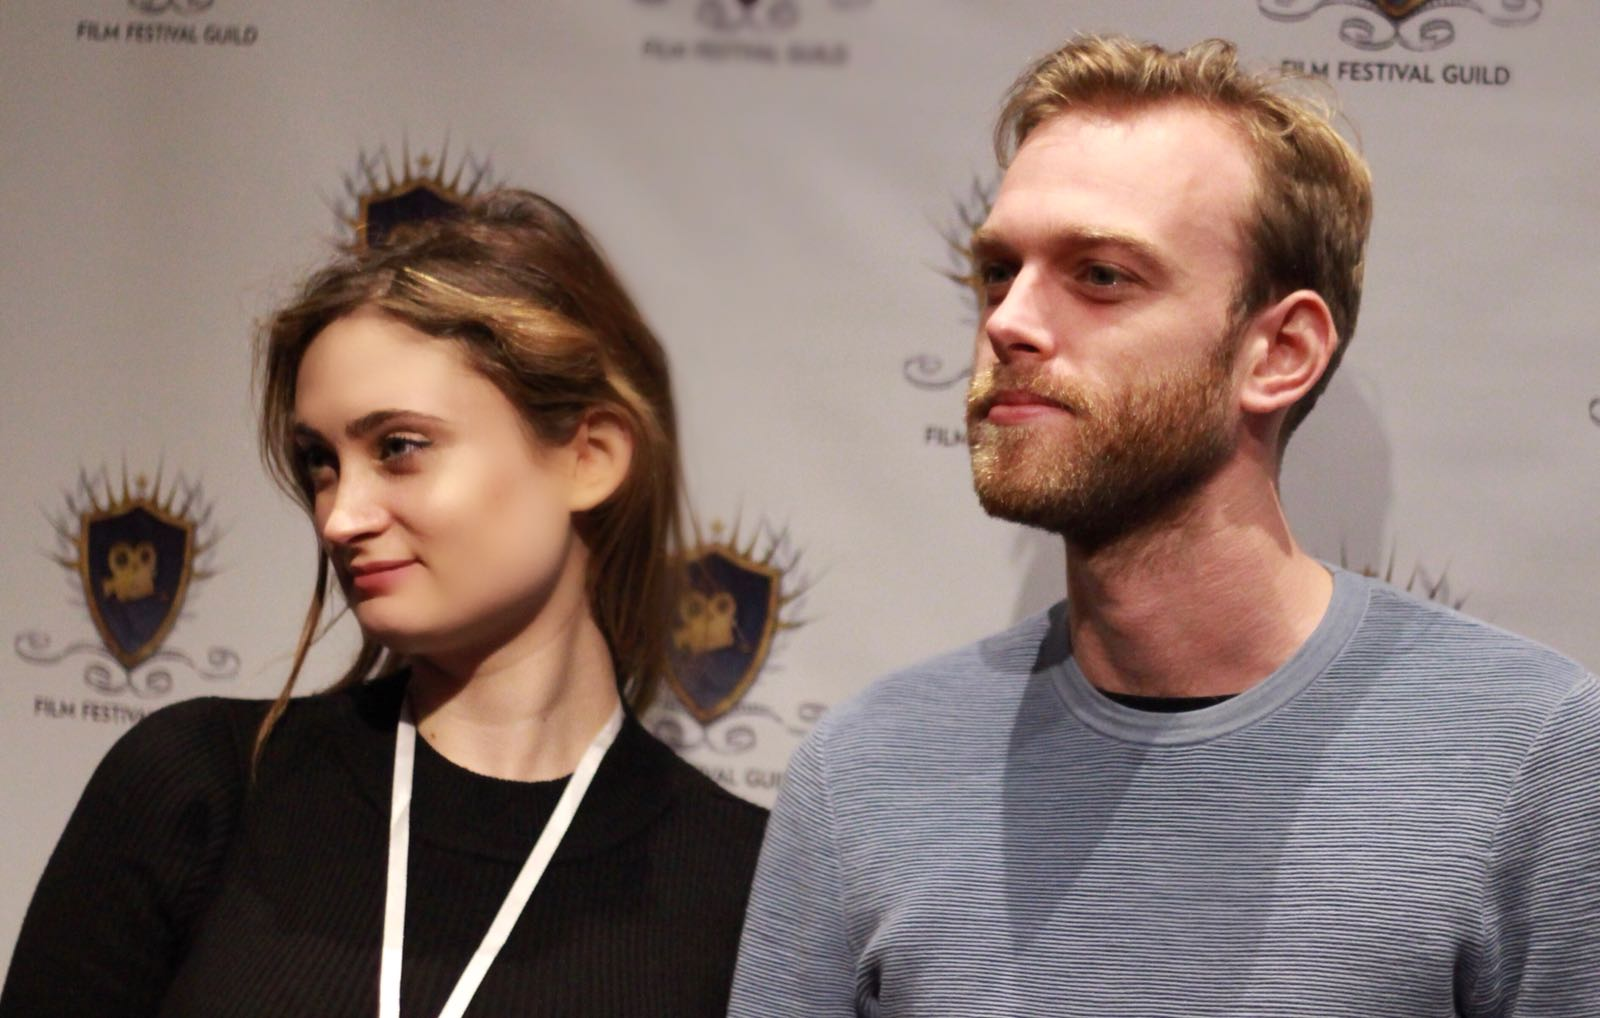 James Mansell and Victoria Morrison at an event for NightmARes (2016)